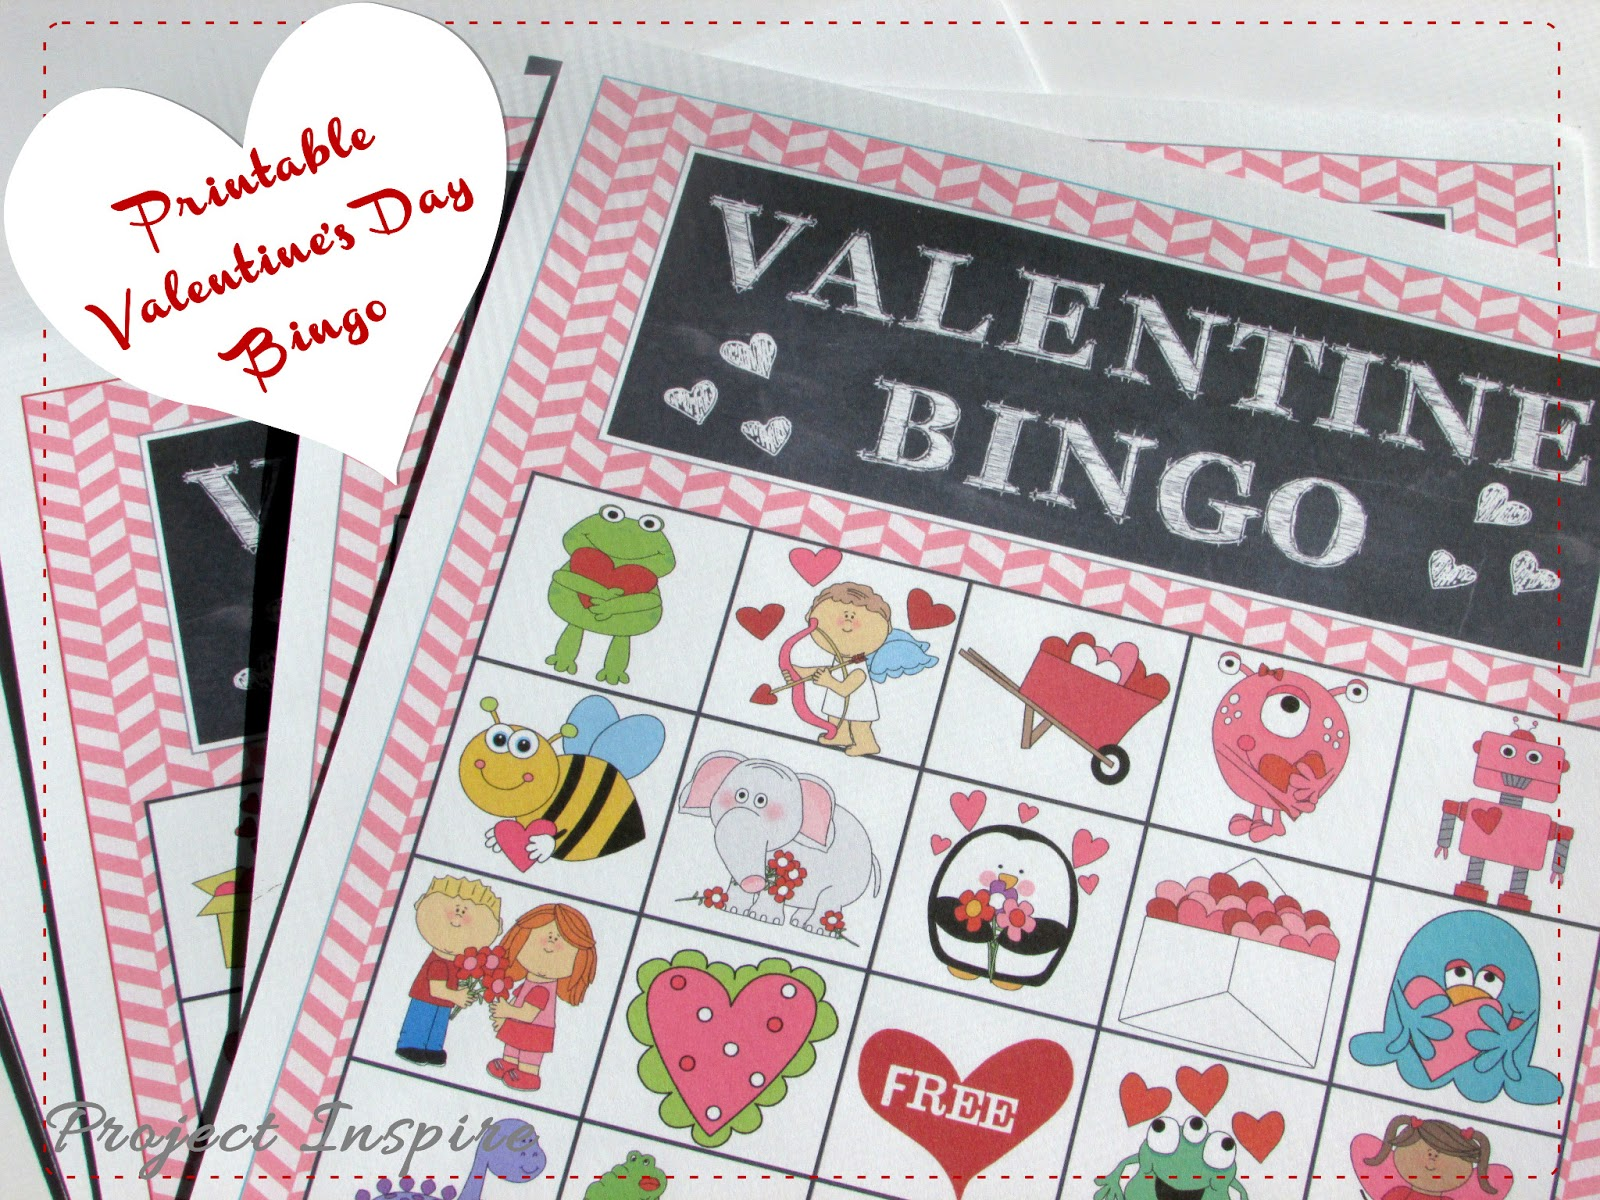 photograph regarding Valentine Bingo Free Printable identify Cost-free Valentines Working day BINGO and Handle Toppers